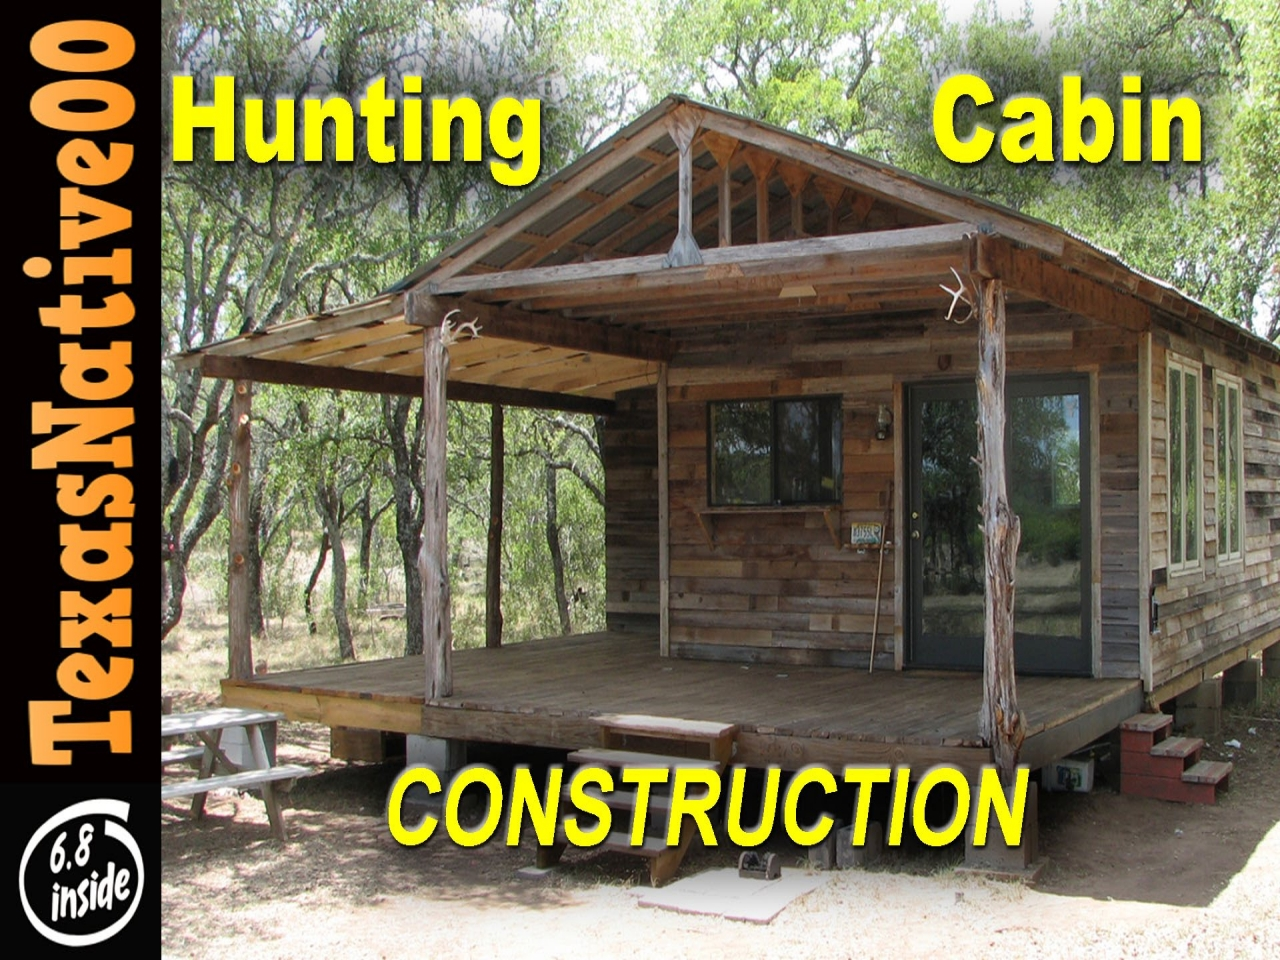 Build This Cozy Cabin Cozy Cabin Magazine Do It Yourself: Small Hunting Cabin Ideas Small Hunting Cabin Plans And